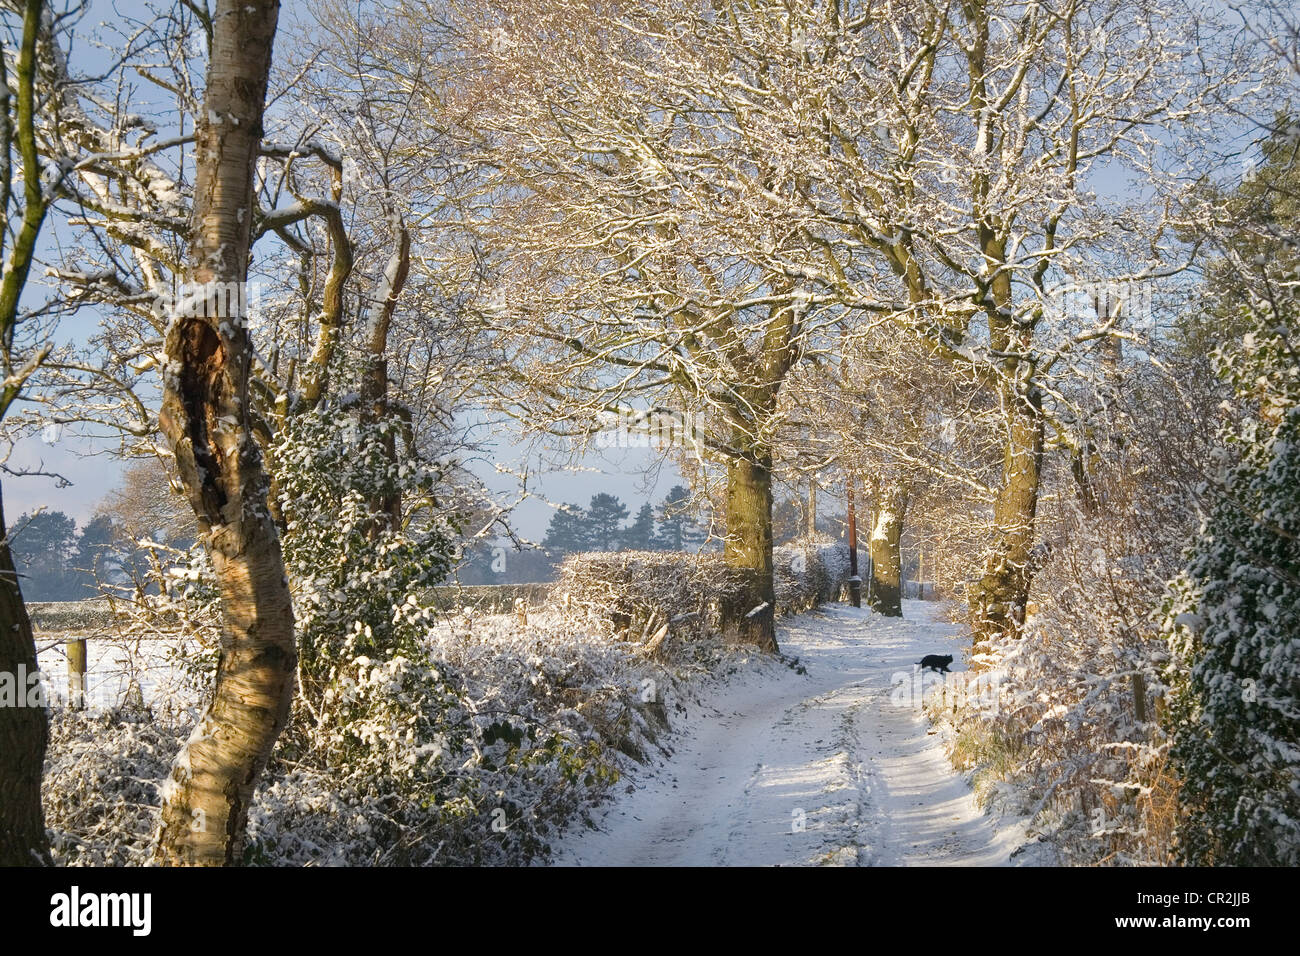 Frosty Tree Scene in Winter in Cheshire - Stock Image